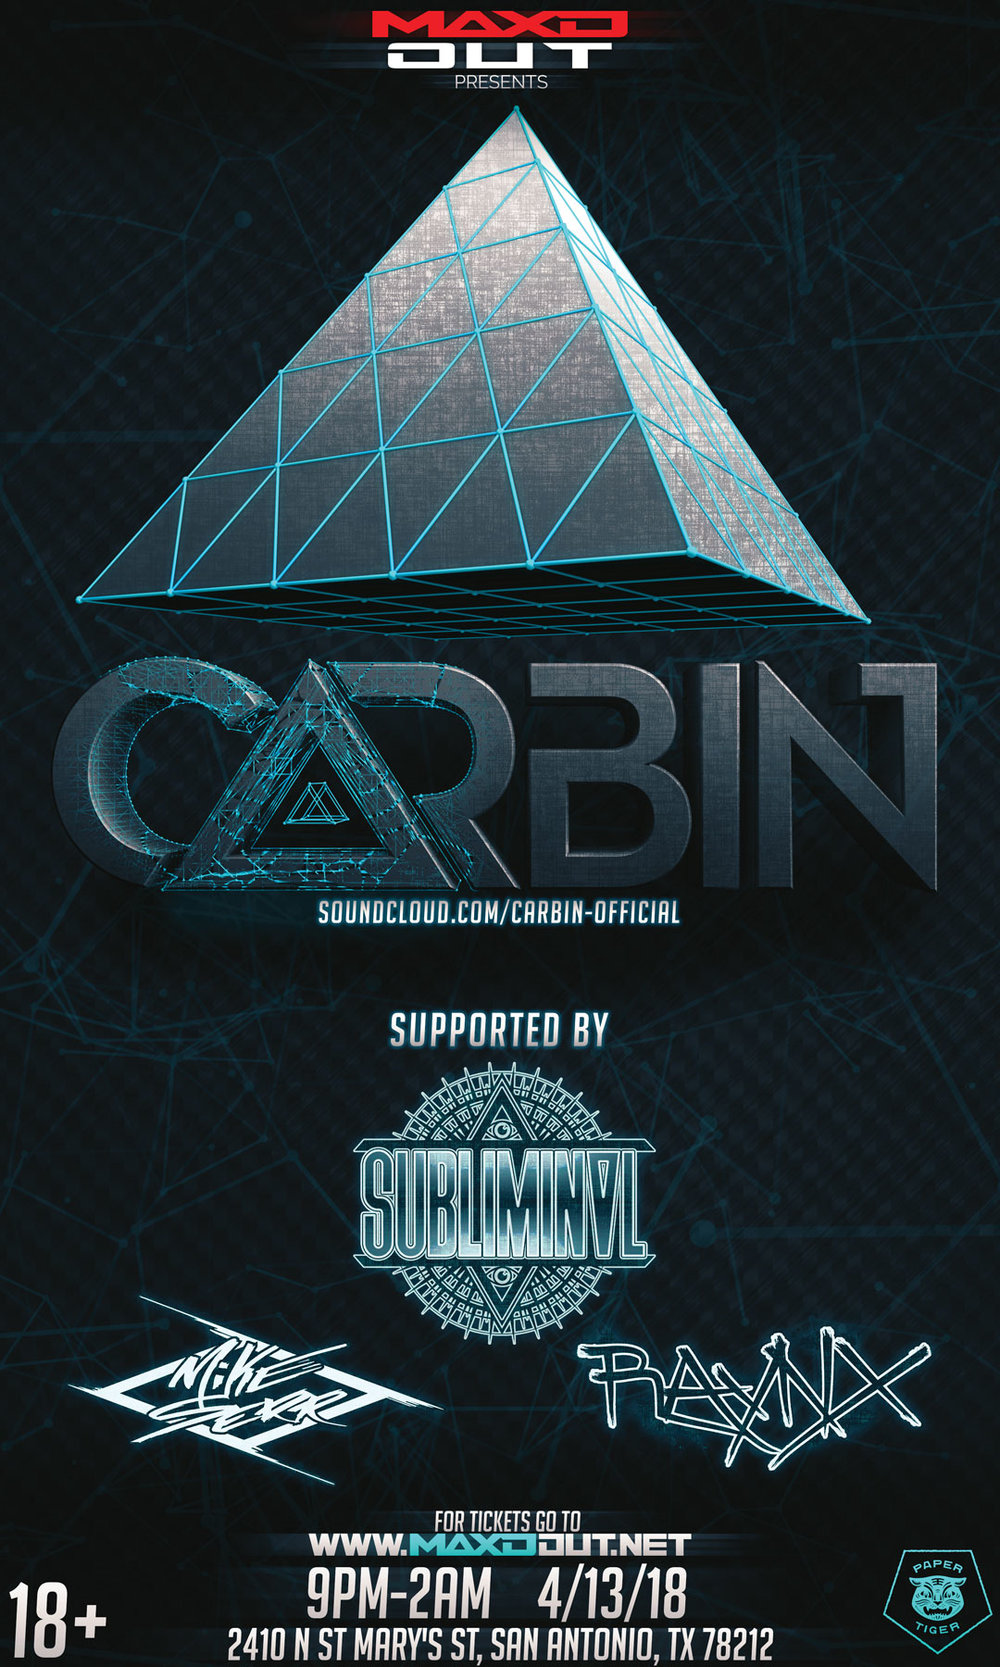 Carbin-Flyer-FINAL-LOWRES.jpg